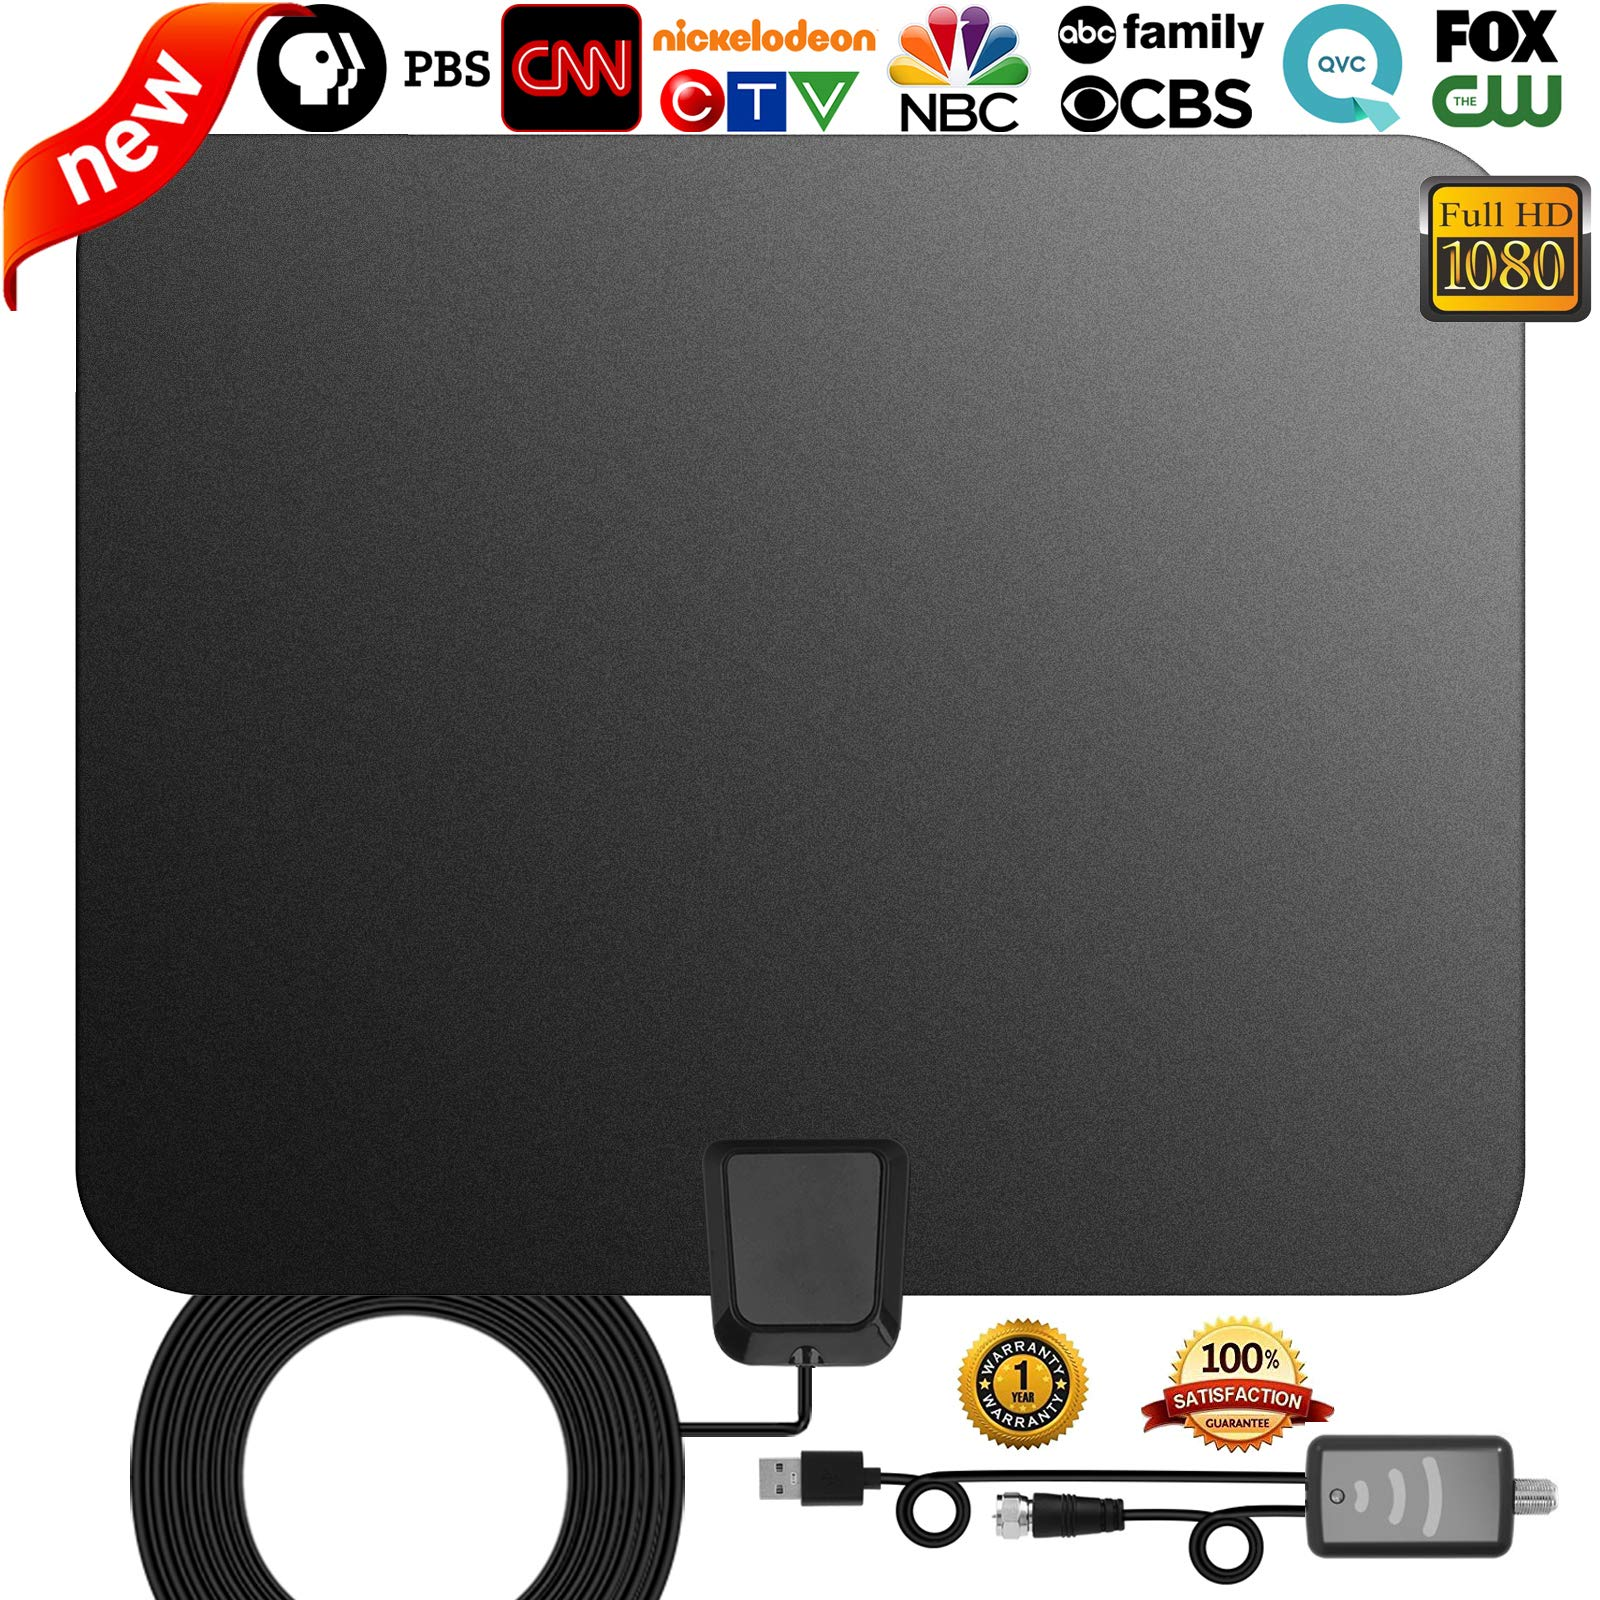 TV Antenna,[Best Indoor Antenna] Indoor Digital HDTV Amplified Television Antenna Freeview 4K 1080P HD VHF UHF for Local Channels 130 Miles with Signal Amplifier Support All Television-13ft Coax Cable by GreenYellow